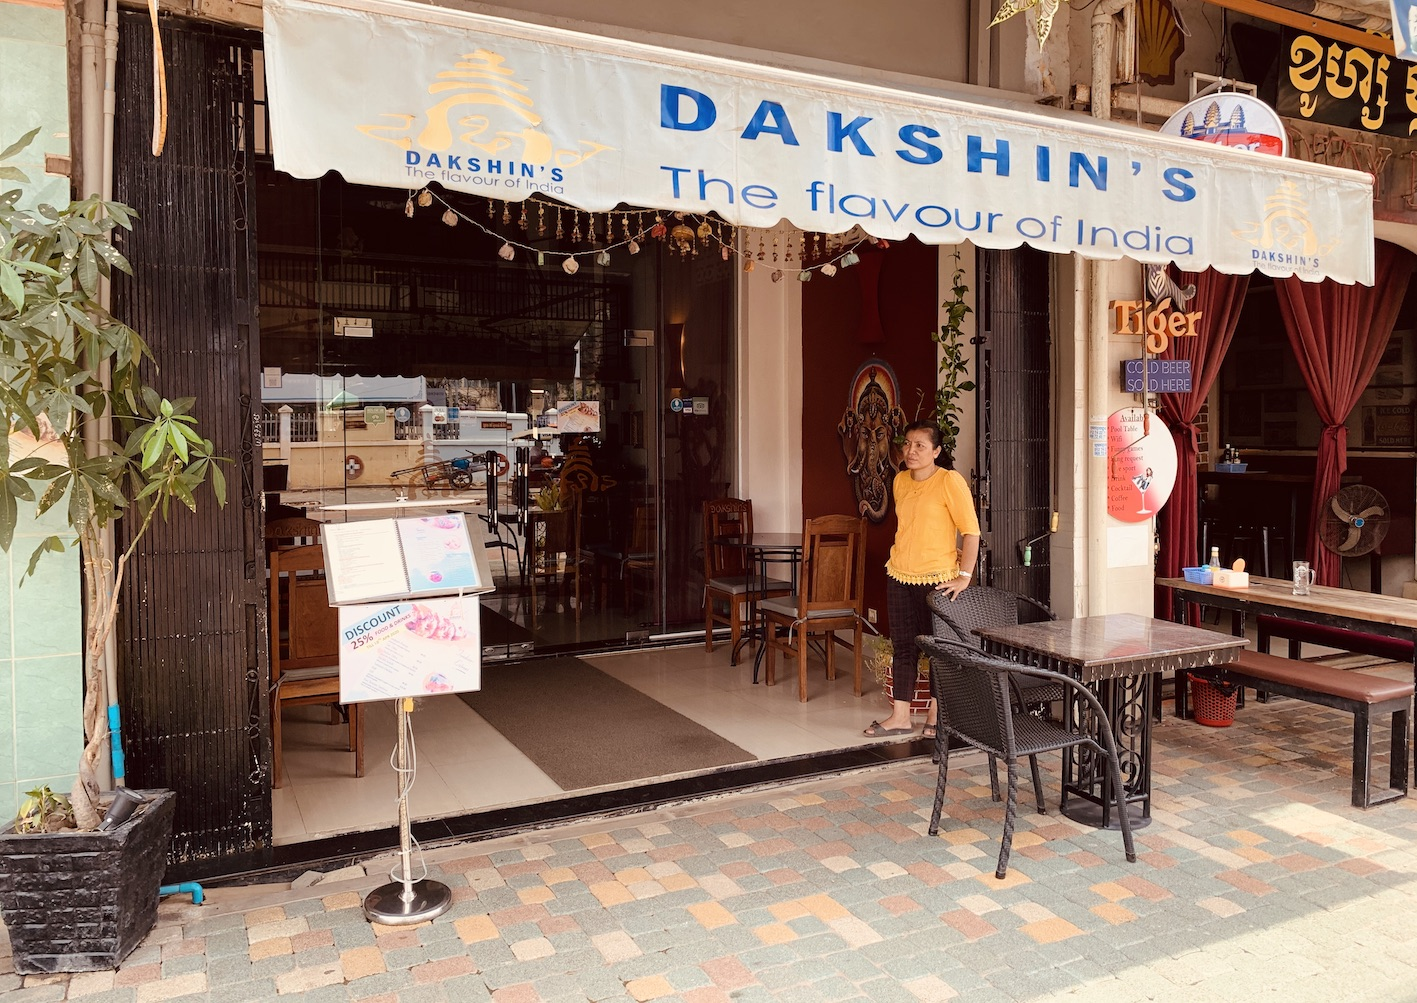 Dakshin's Indian Restaurant Siem Reap.